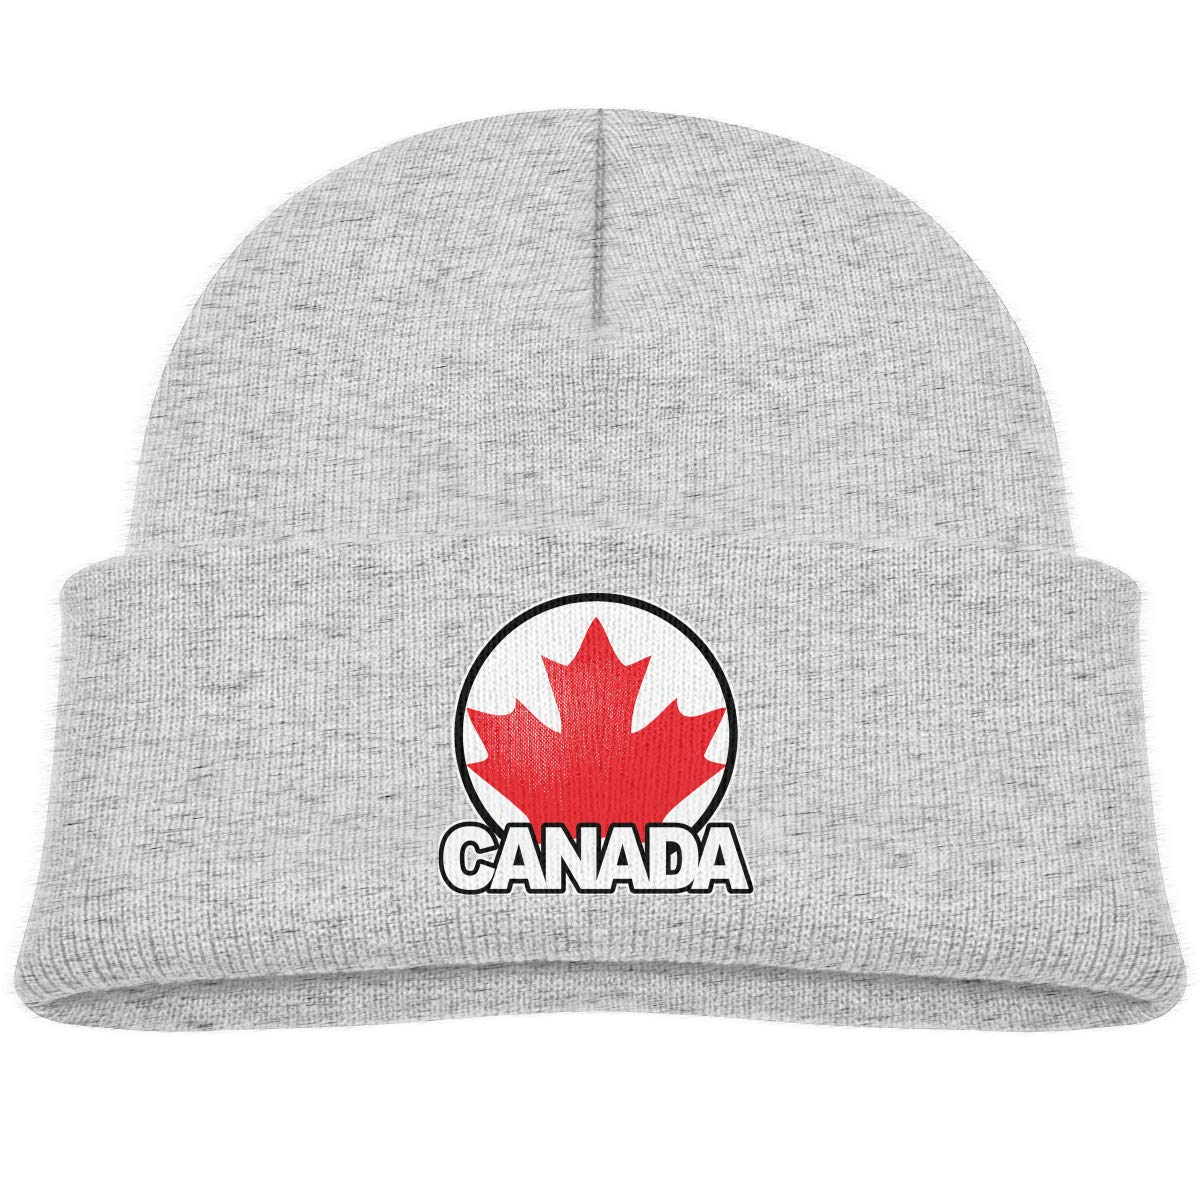 Kids Knitted Beanies Hat Canada Maple Leaf Winter Hat Knitted Skull Cap for Boys Girls Black kidhome